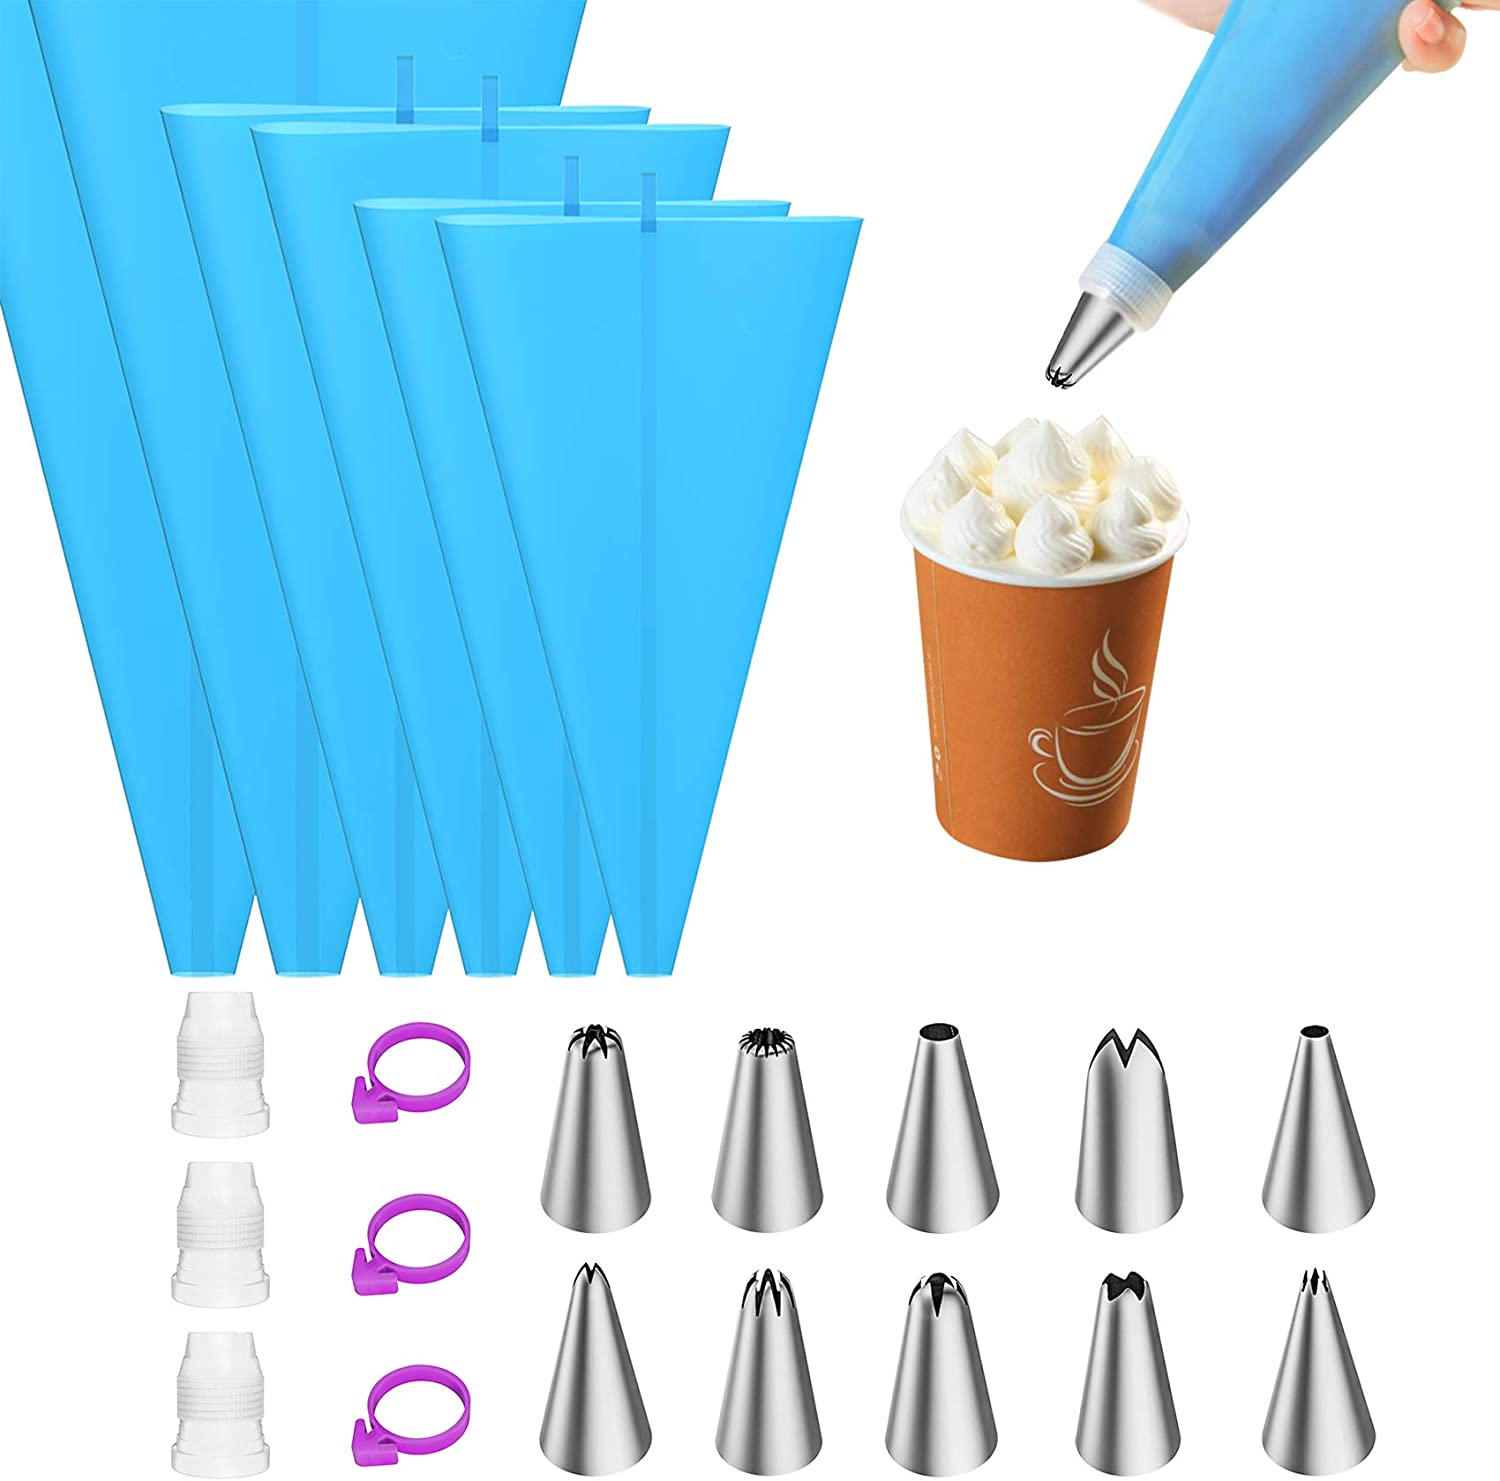 Ouddy 6Pcs Silicone Piping Bags, Pastry Icing Piping Bags, Reusable Piping Bags and Tips Set with 3 Icing Bags Ties, 10 Frosting Tips, 10 Disposable Piping Bags and 1 Cleaning Brushes (12''+14''+16'')